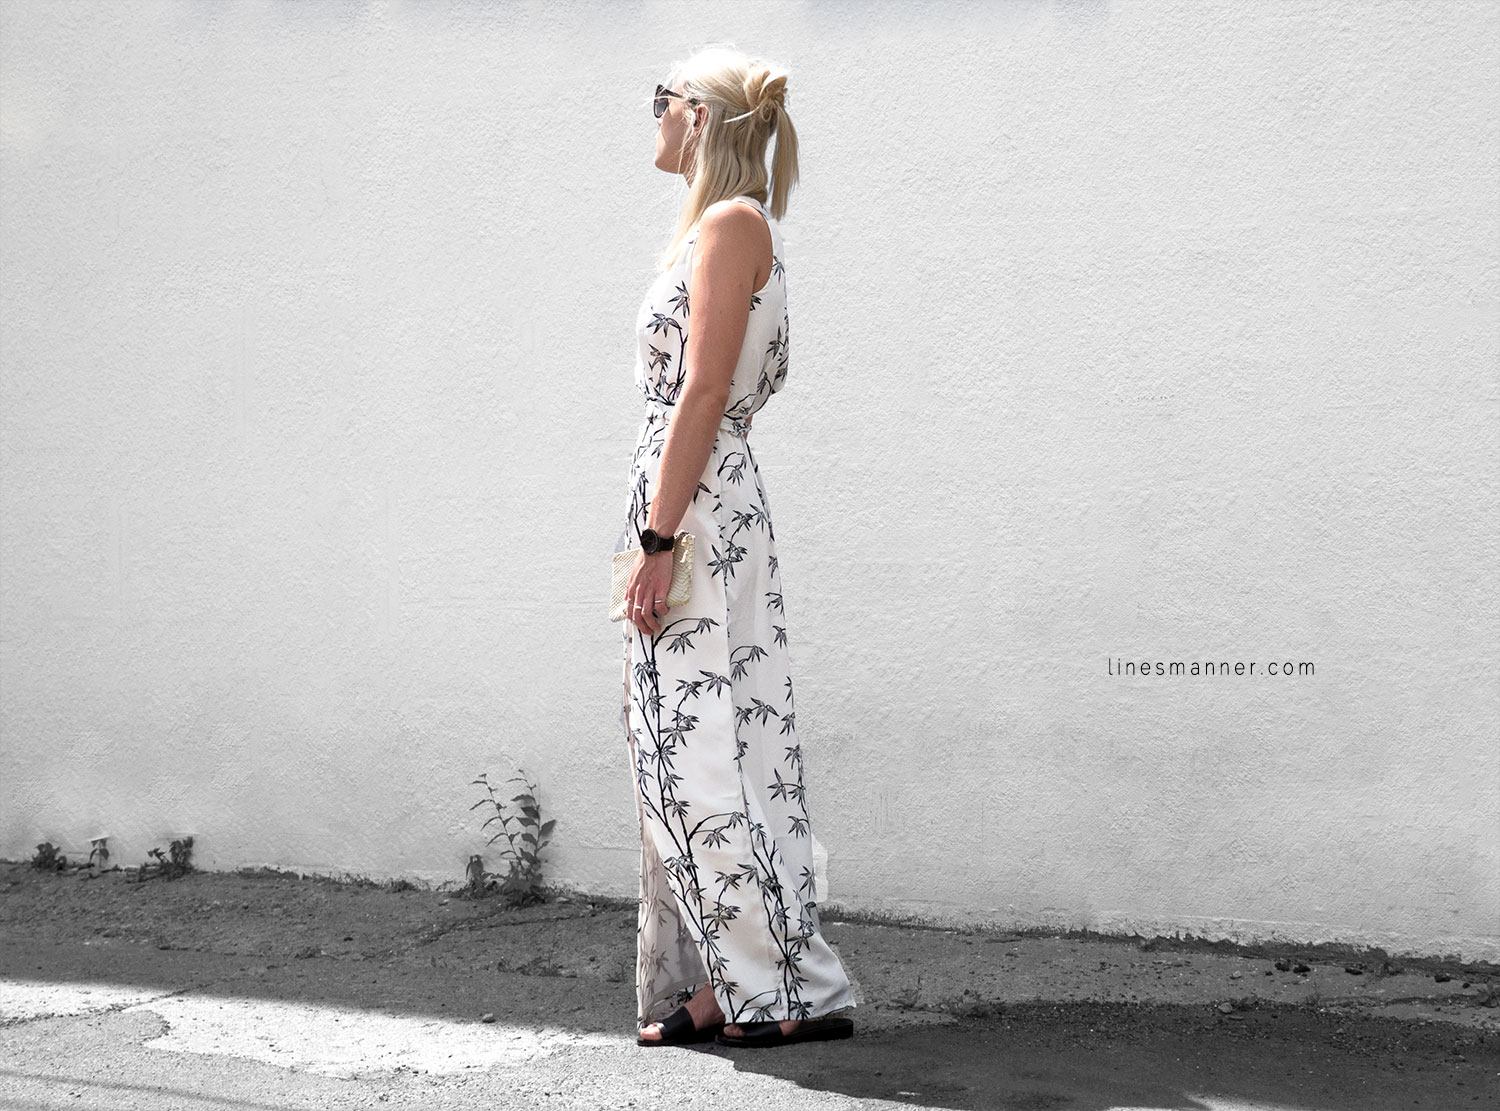 Lines-Manner-Minimal-Simplicity-Essentials-Bon_Label-Neon_Rose_Print-Bamboo-Slit_Dress-Wrap_Dress-Maxi_Dress-Fesh-Black_and_White-Casual-Elegant-Bright-Monochrome-11